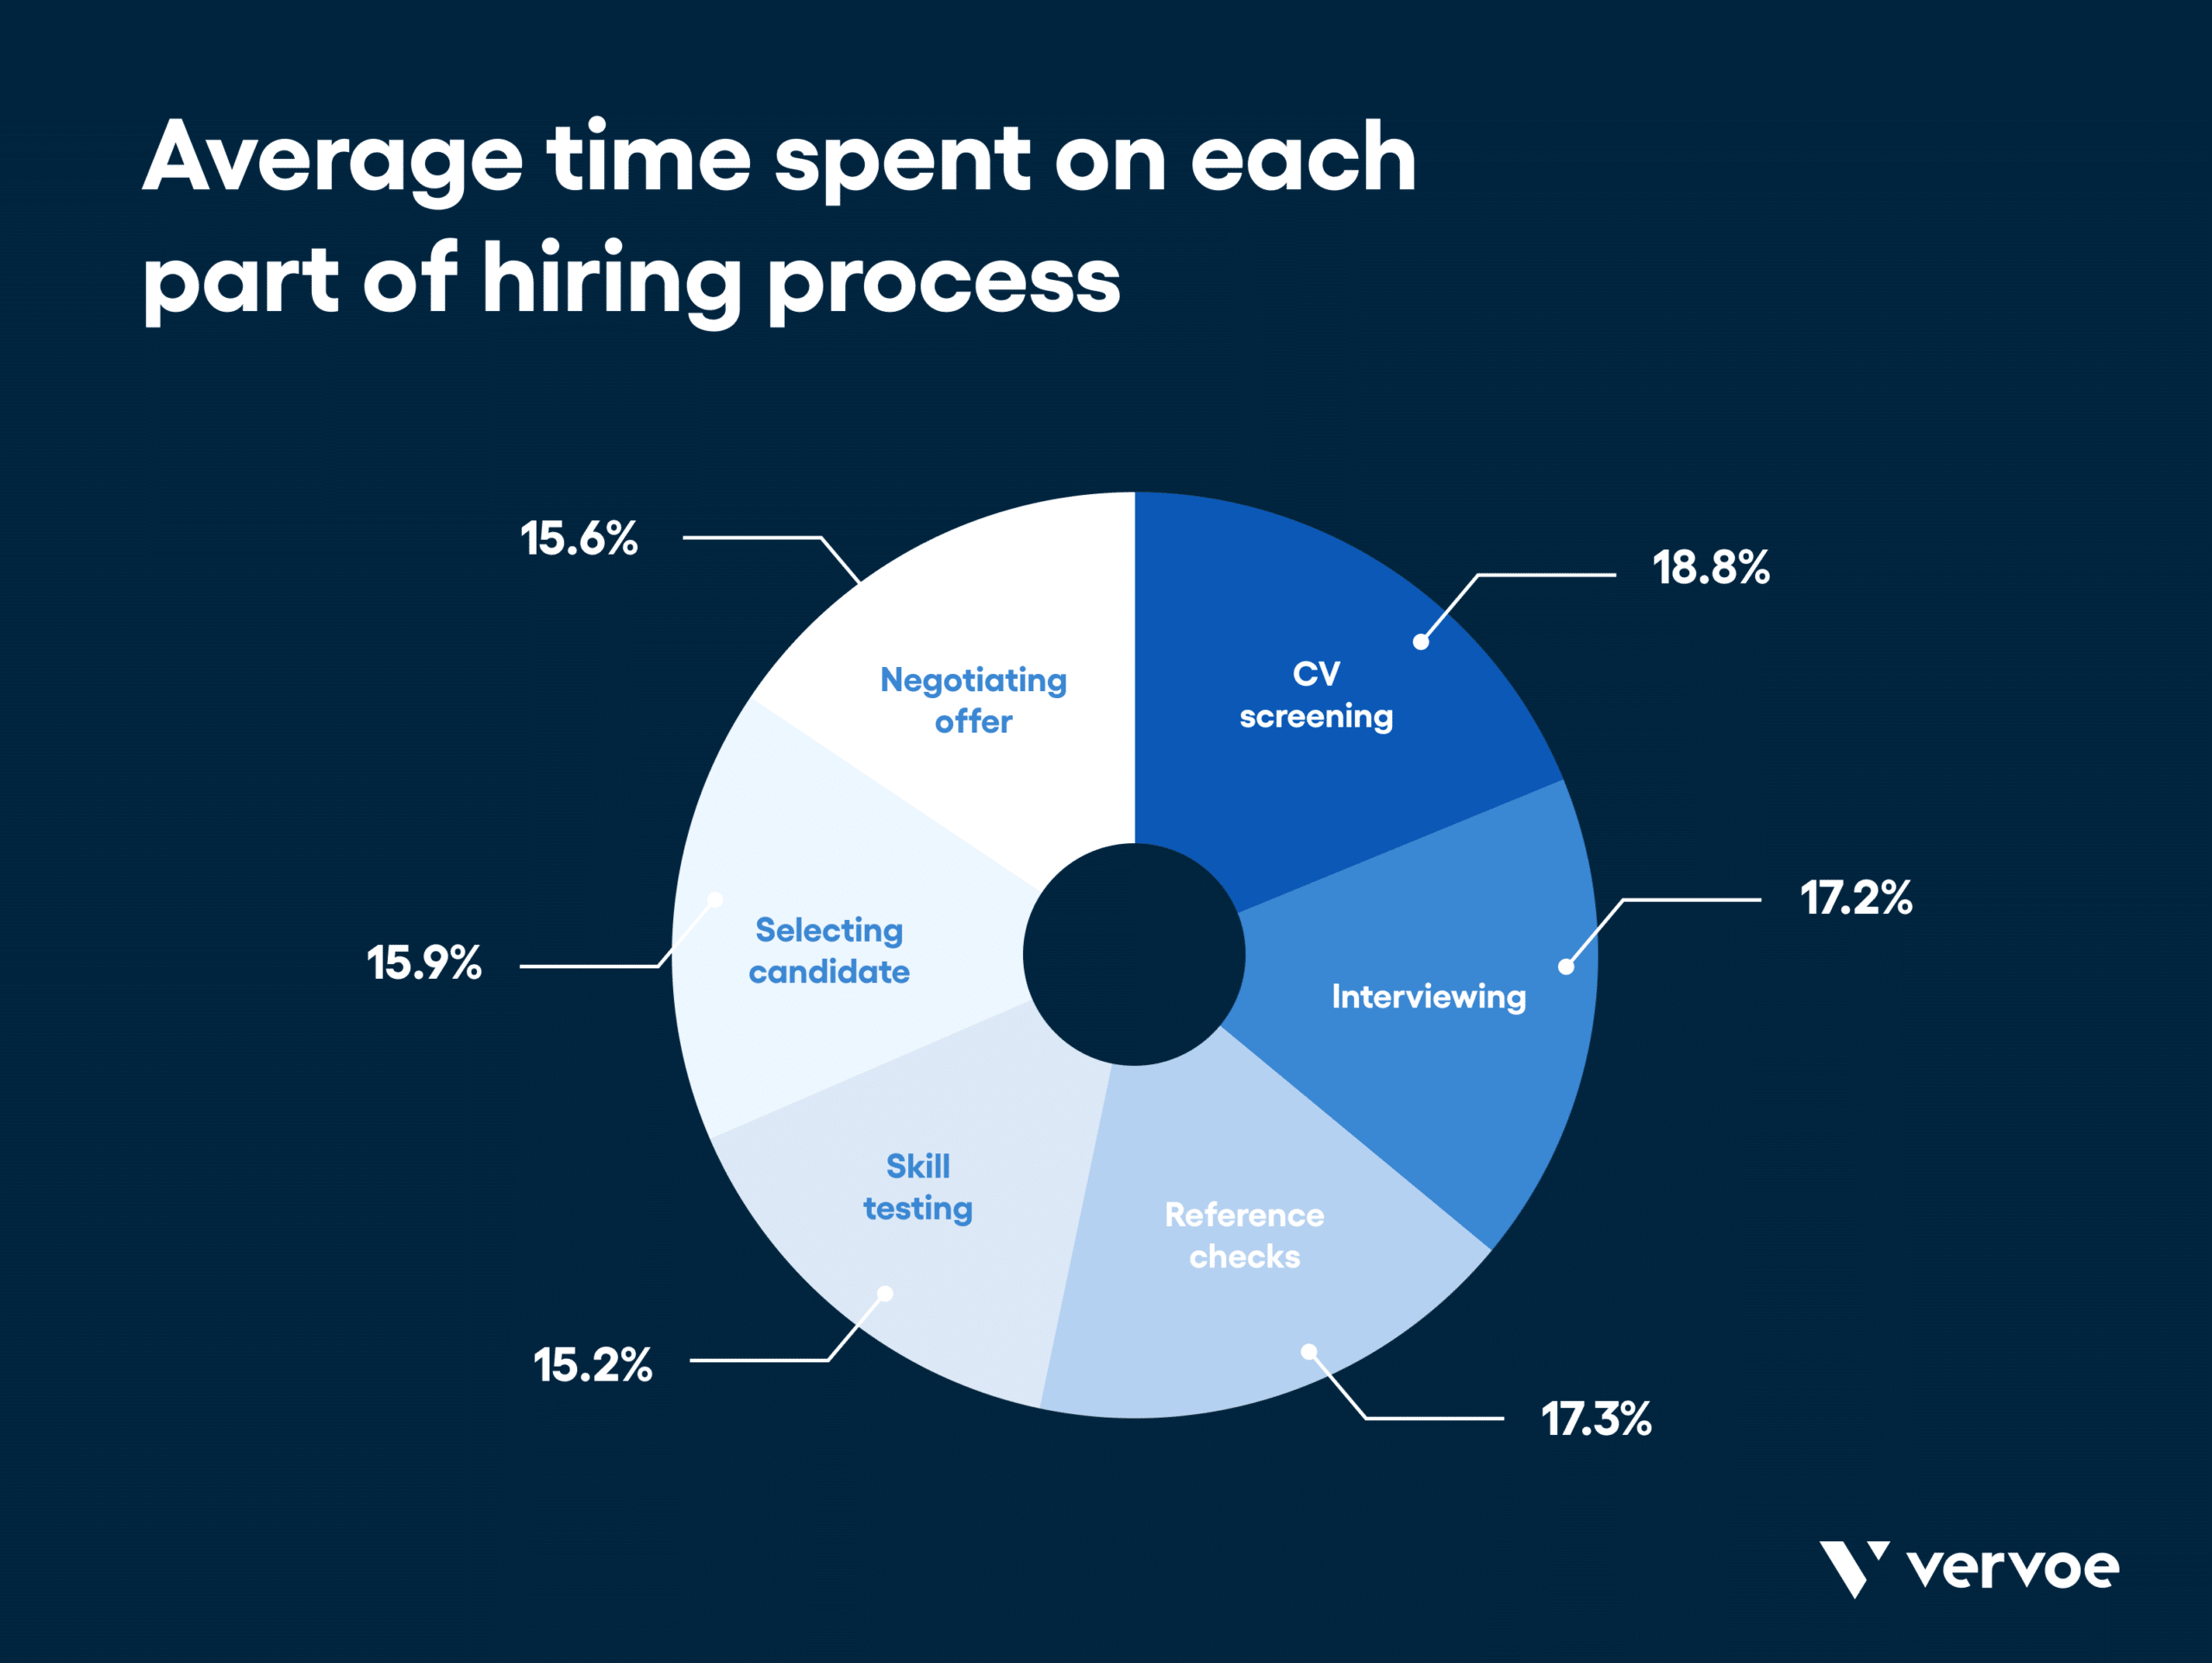 Graphic showing the average time spent on each part of the hiring process